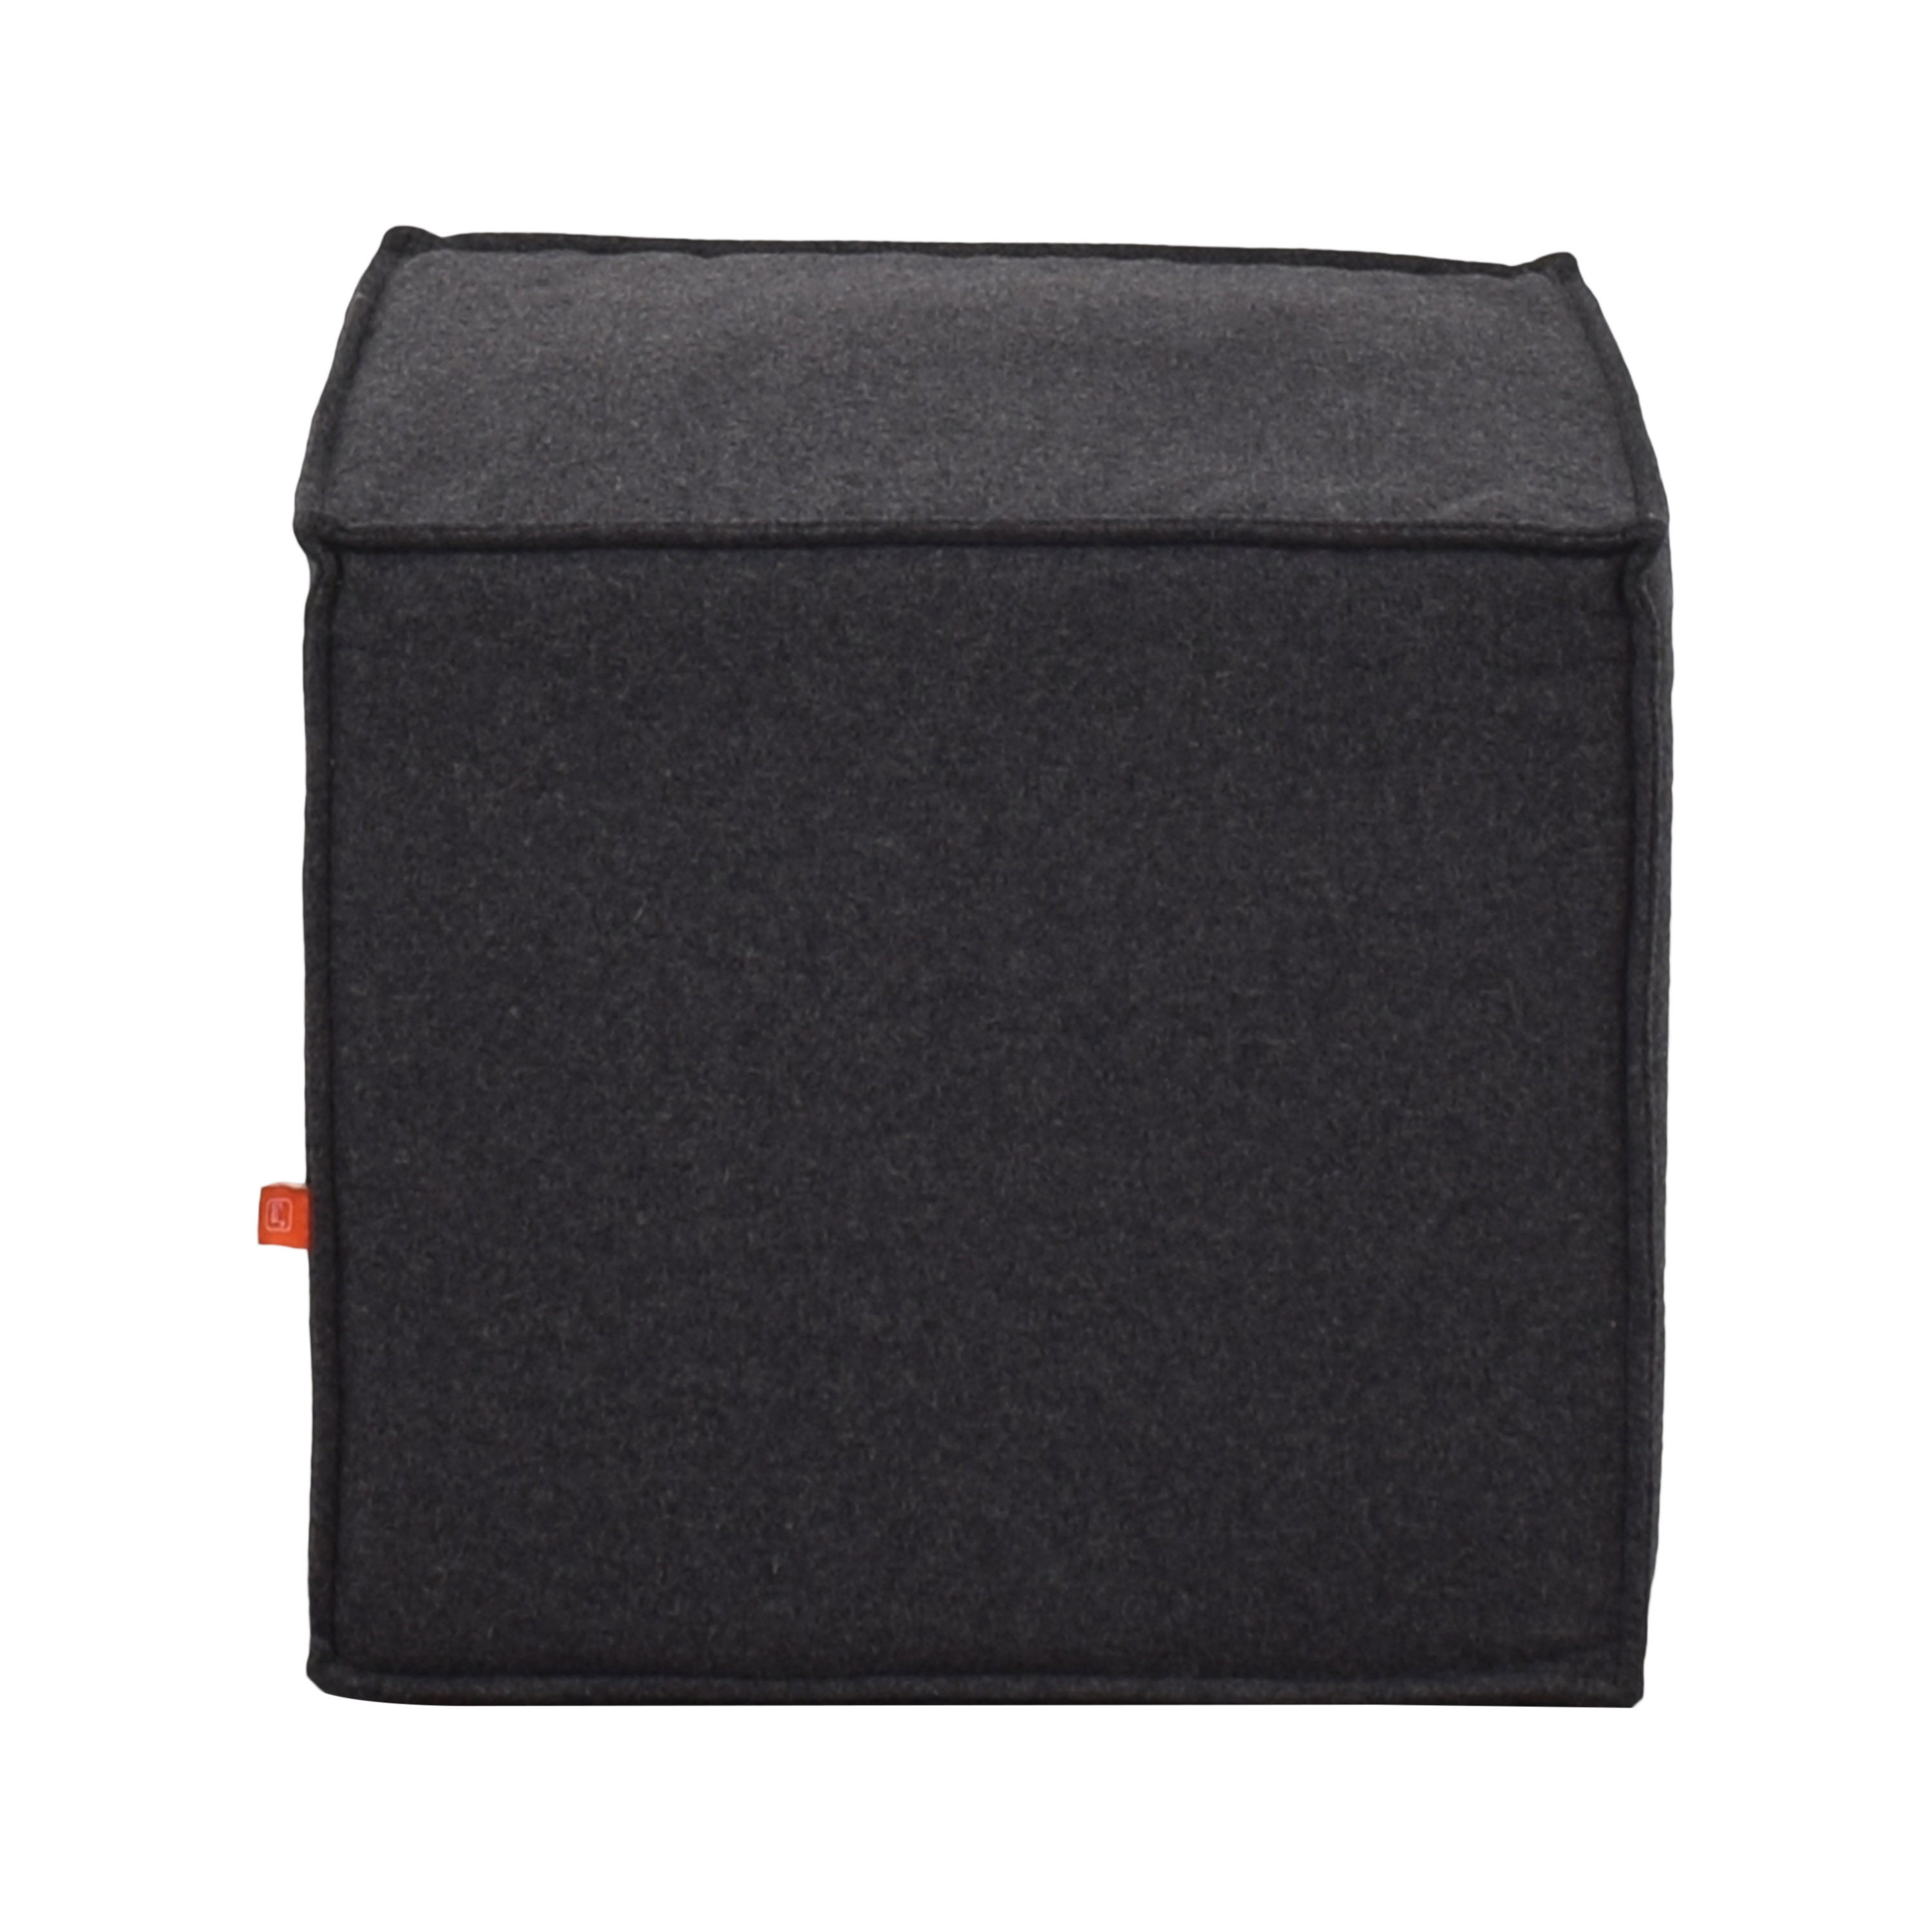 Gus Modern Gus Modern Upholstered Cube Ottoman or Stool nyc